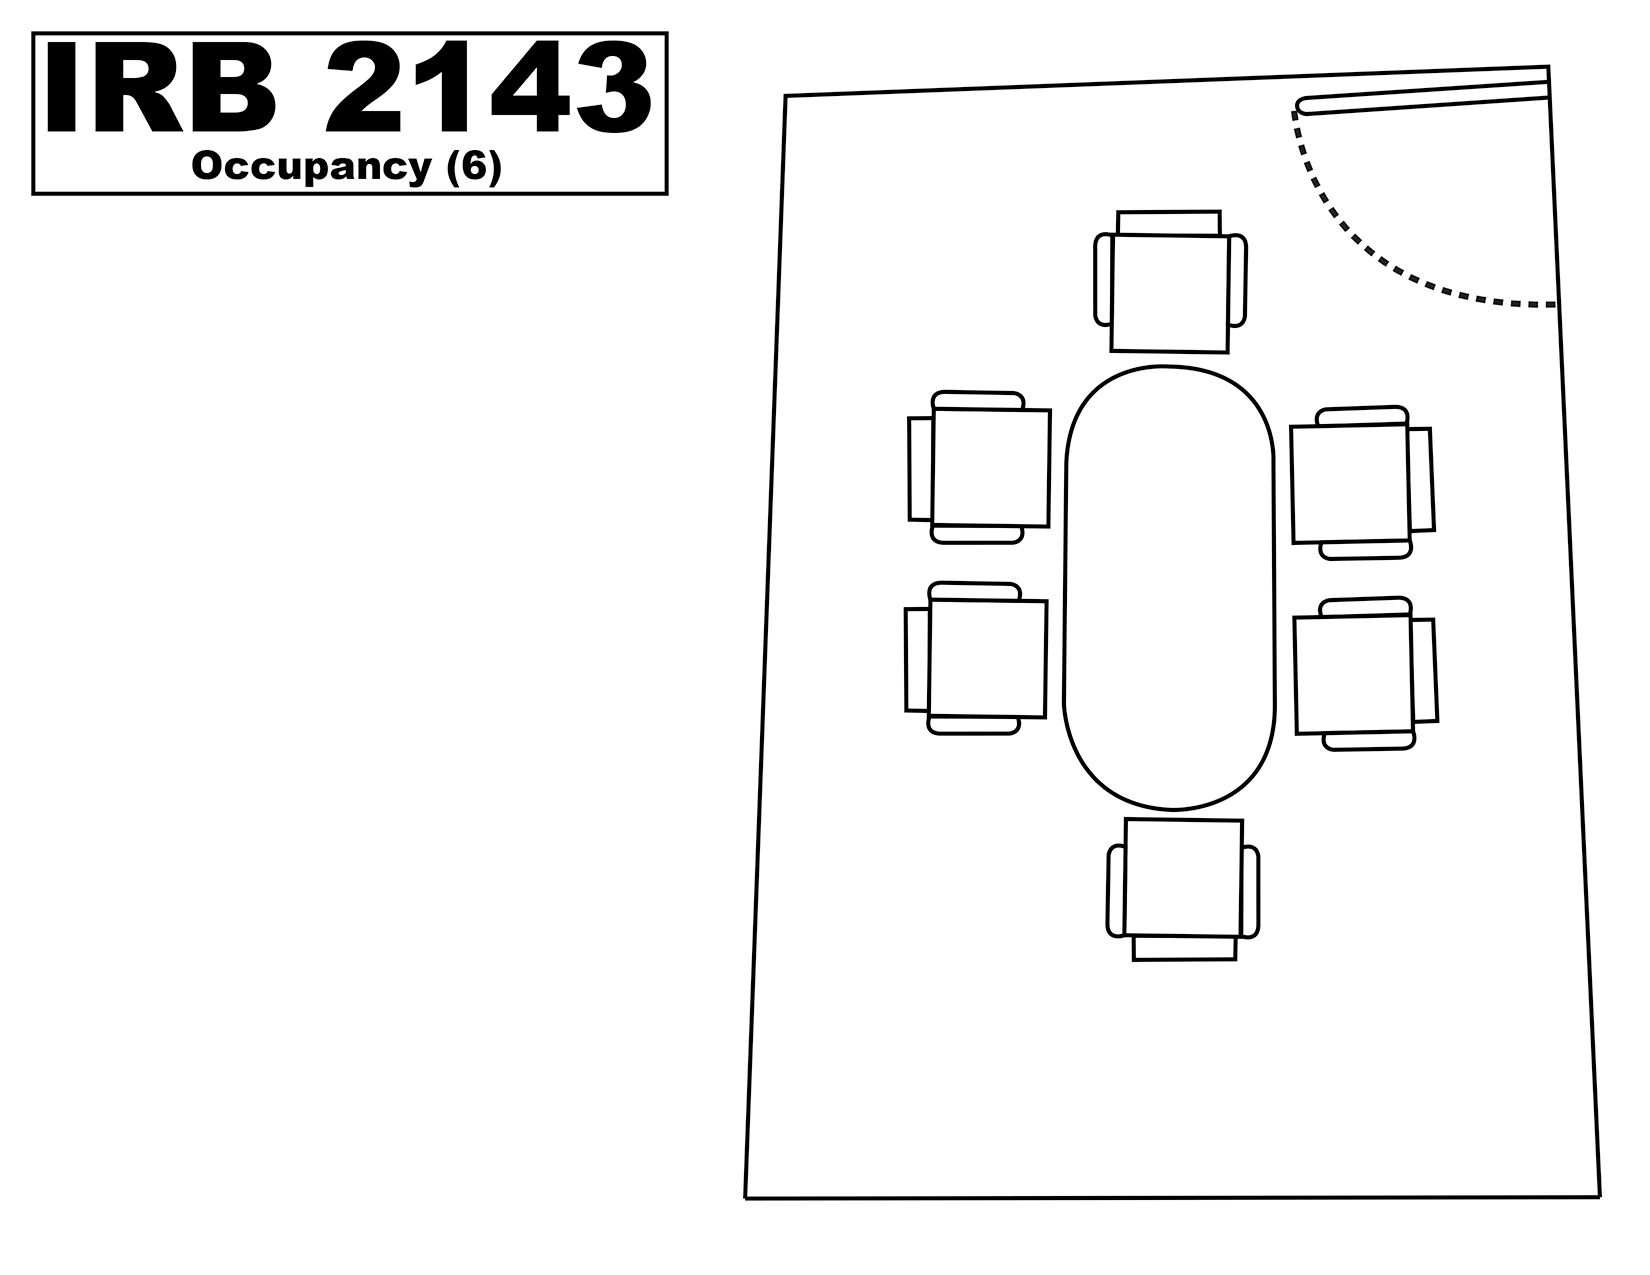 IRB2143 floorplan